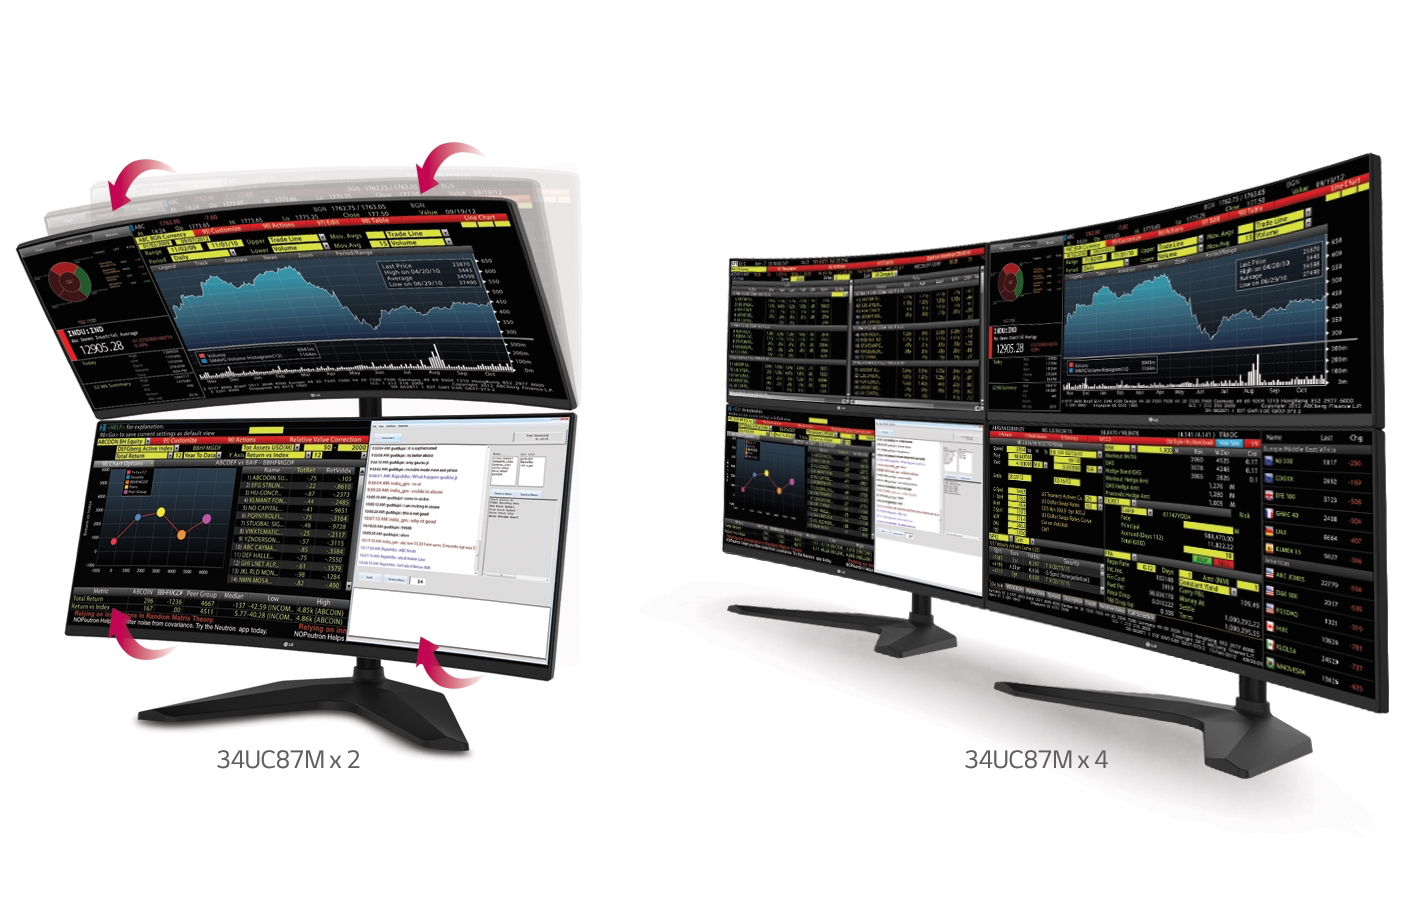 Lg Announces A Curved 34 Inch Monitor That S Tailor Made